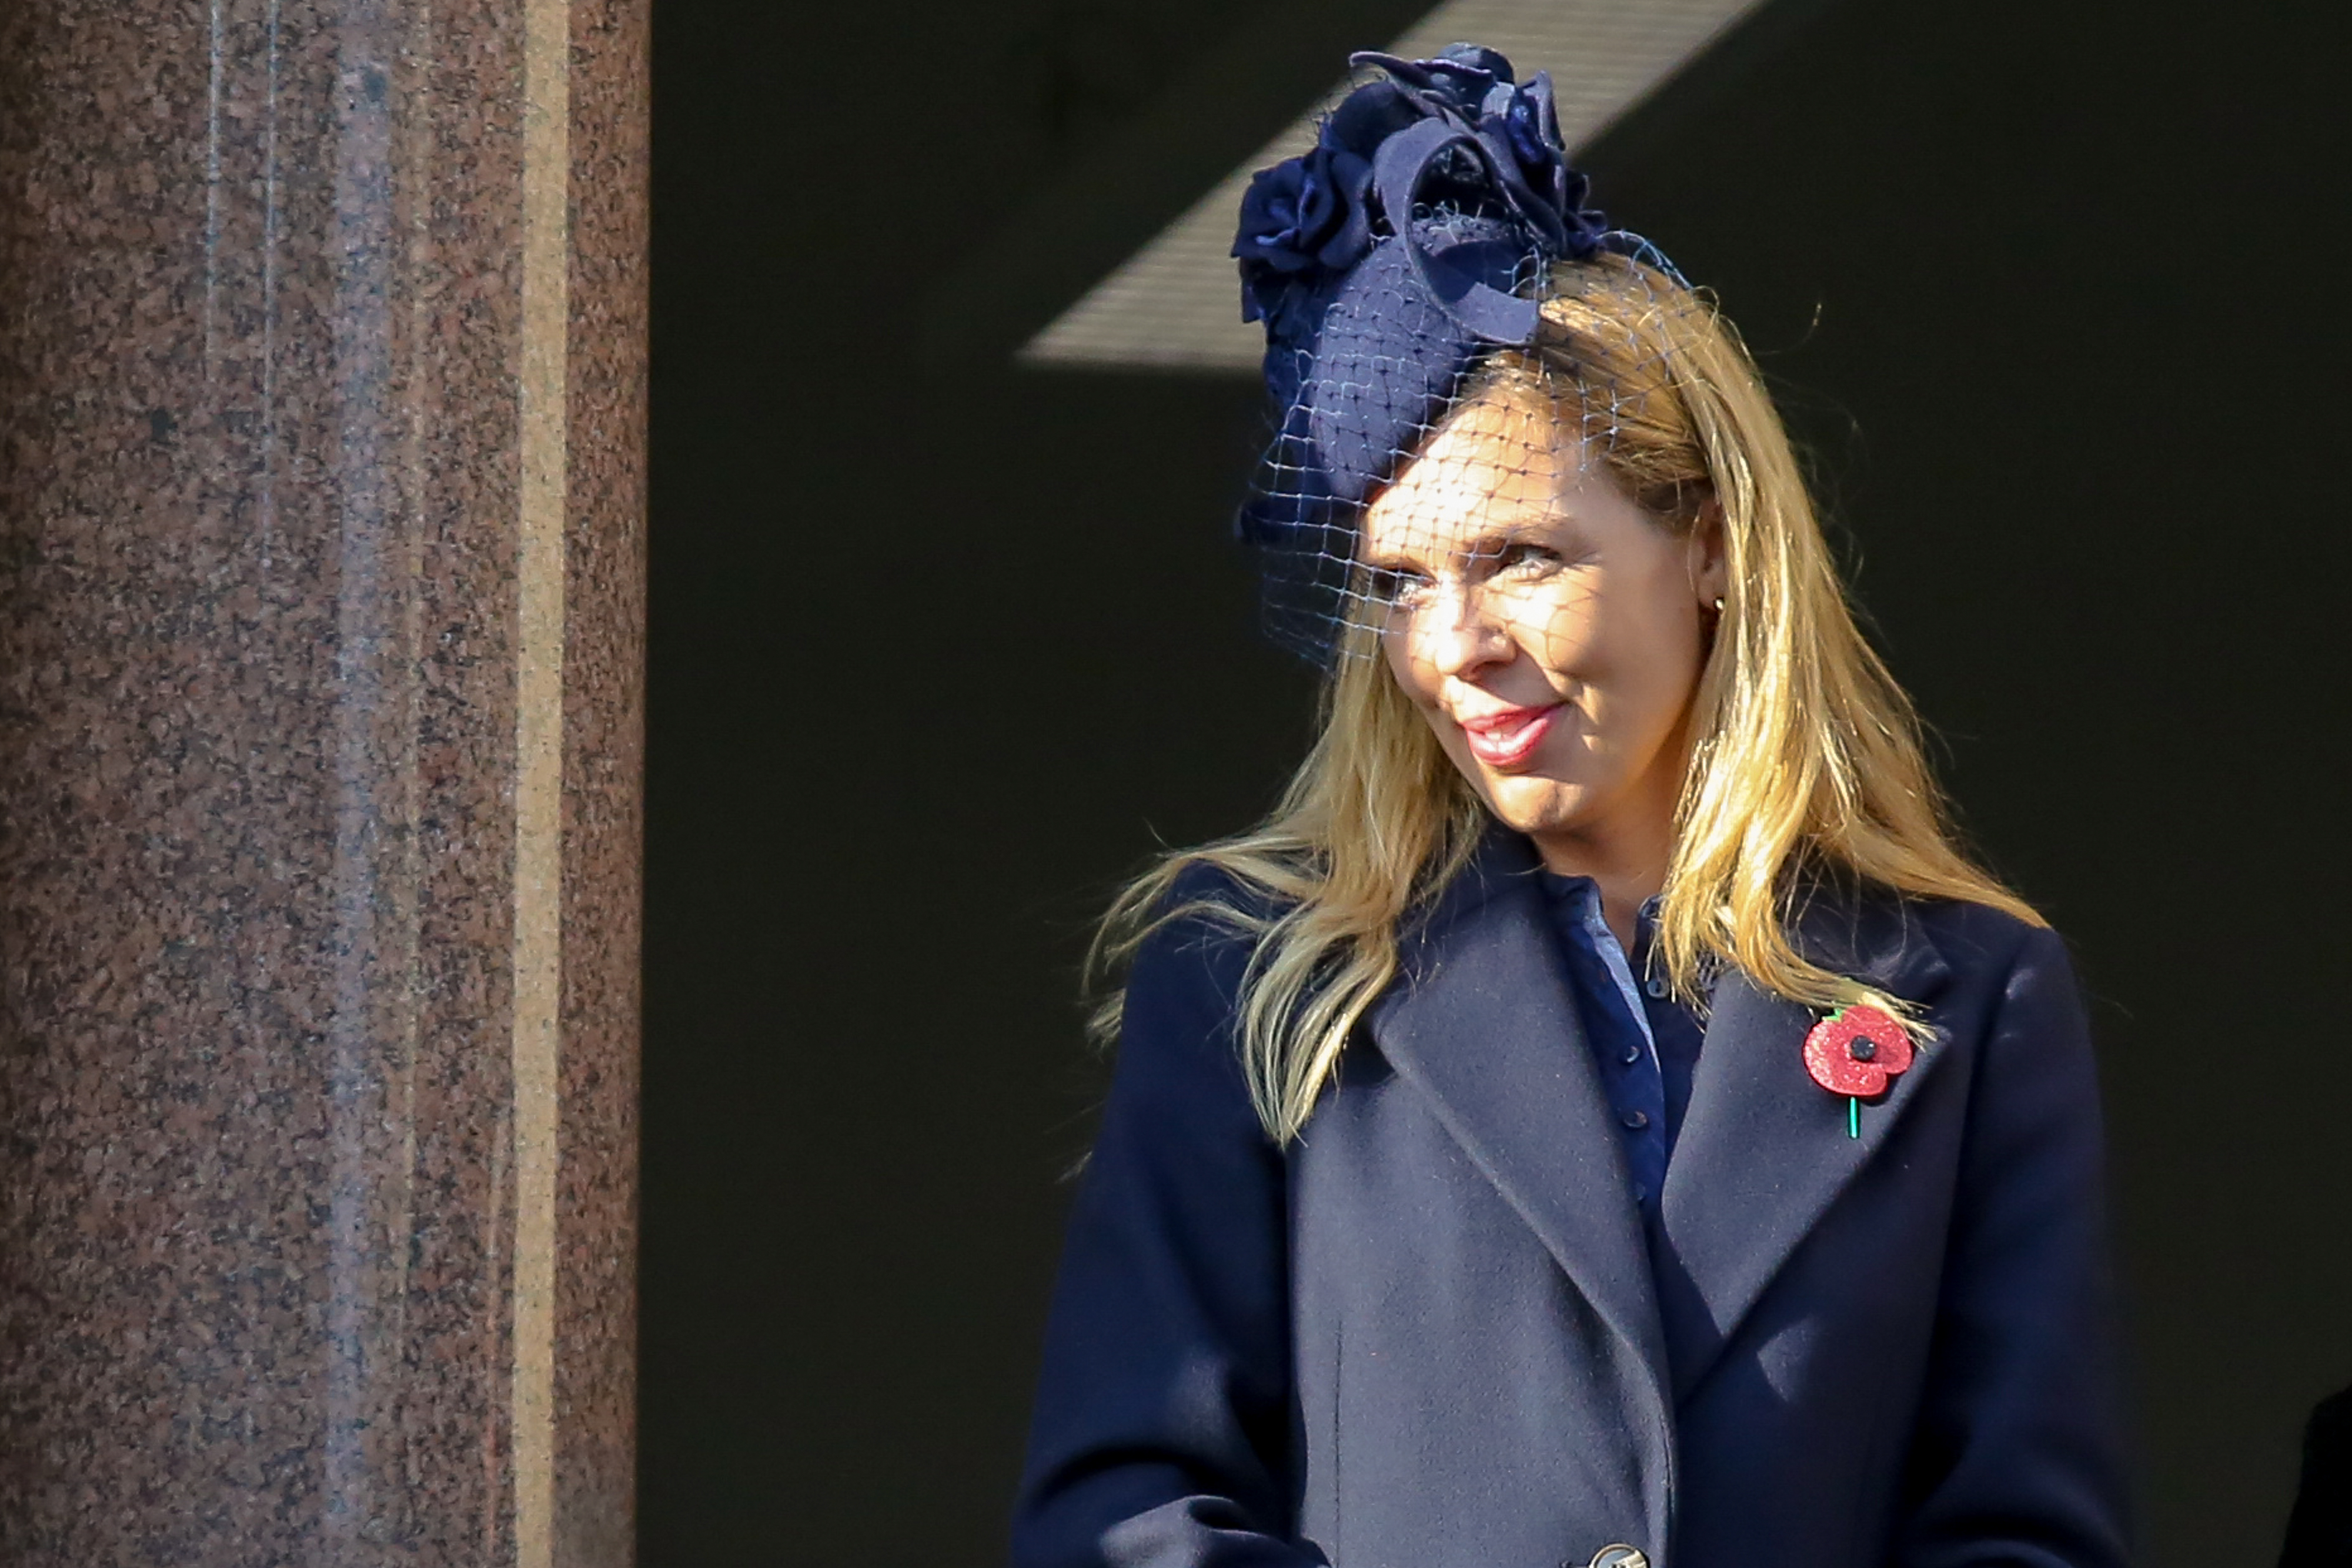 British Prime Minister Boris Johnson's partner Carrie Symonds attends the annual Remembrance Sunday memorial at The Cenotaph, in Whitehall, London. (Photo by Steve Taylor / SOPA Images/Sipa USA)